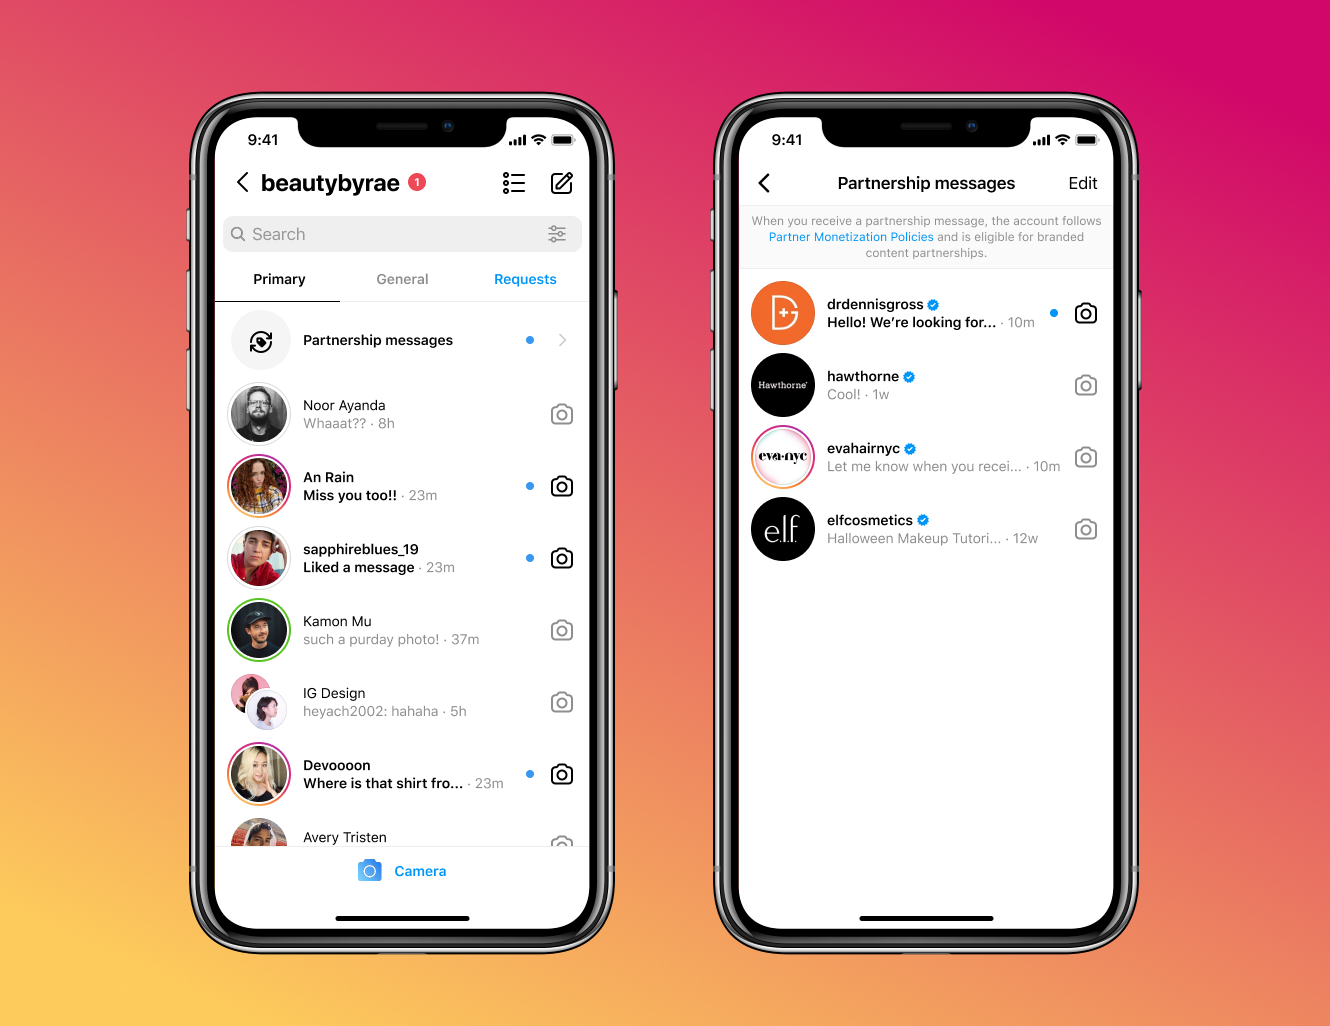 Instagram is testing a new inbox for messages from potential partners.